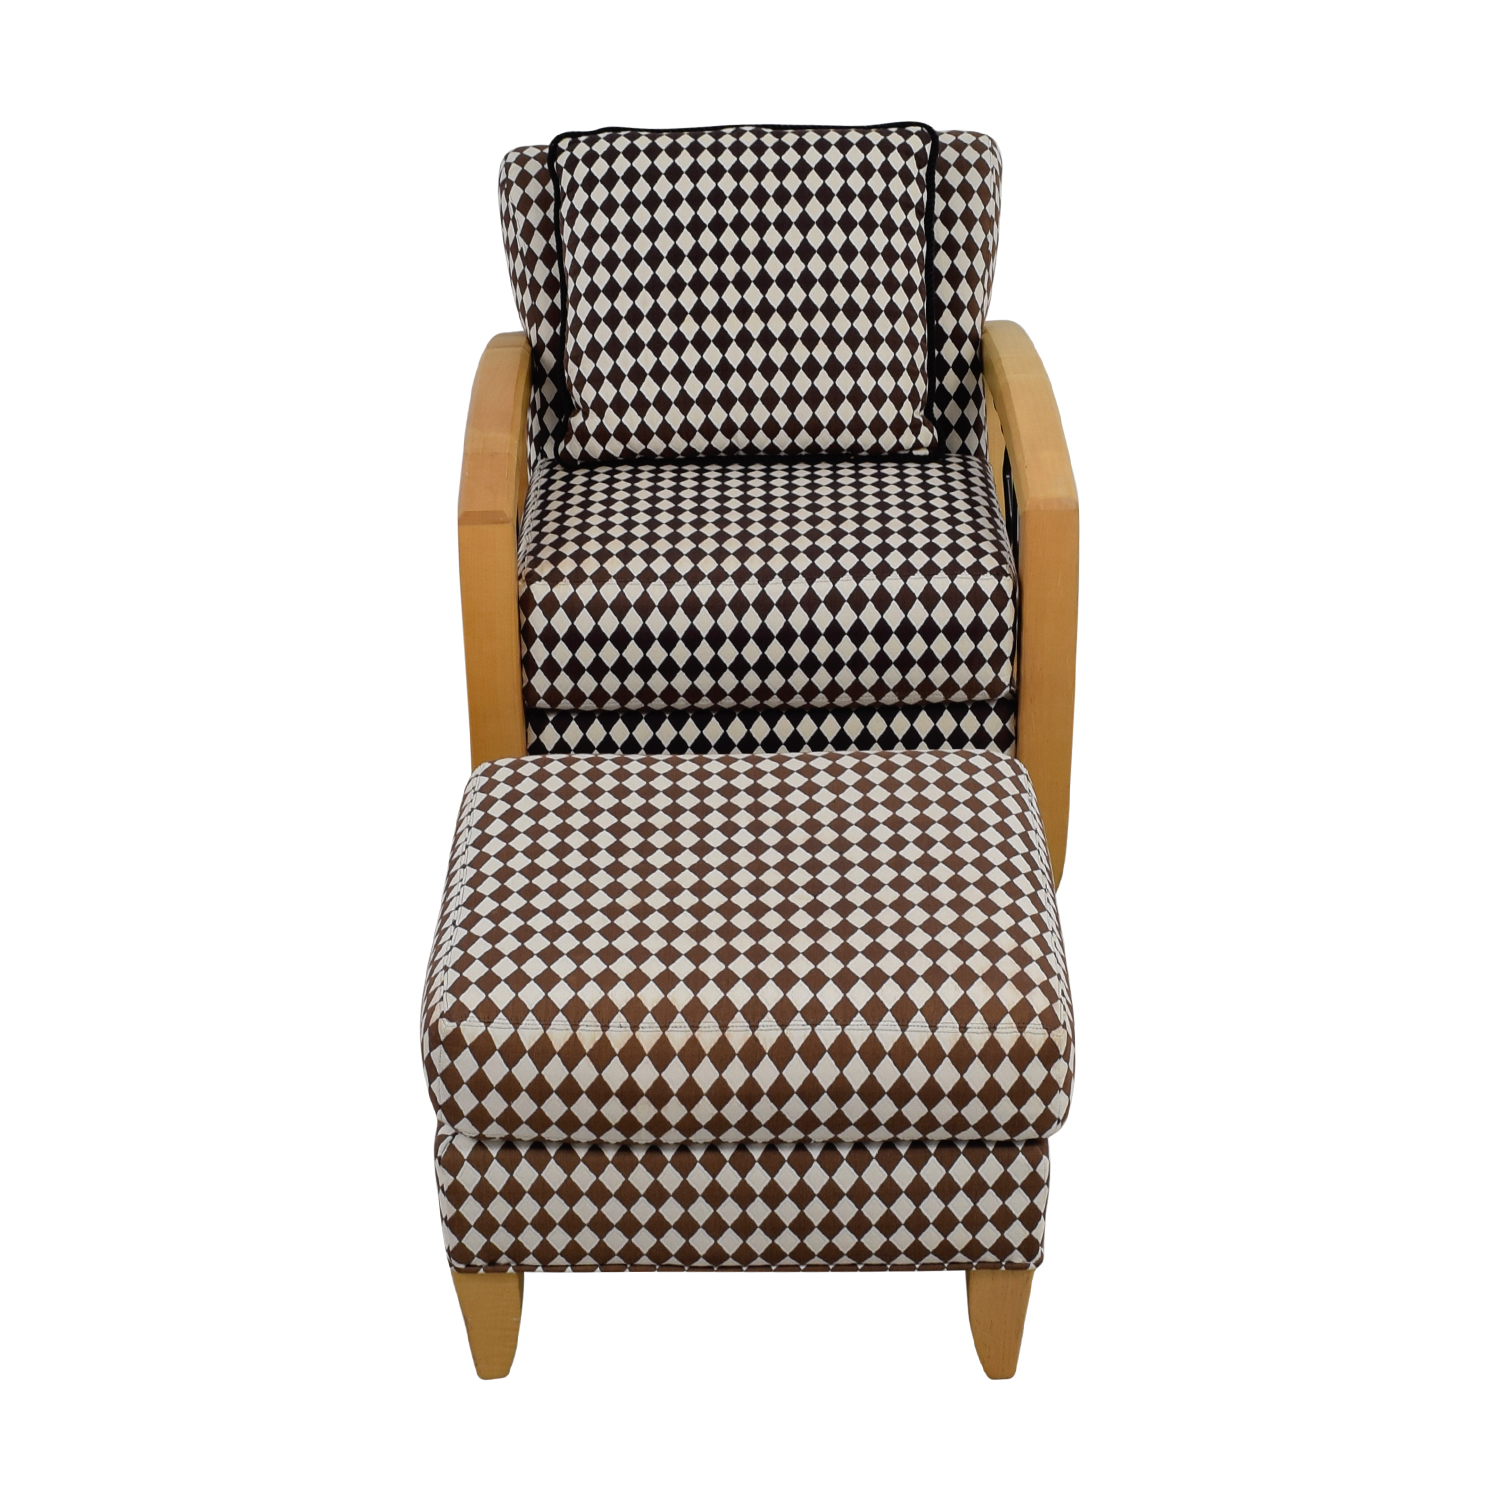 Thayer Coggin Thayer Coggin Cherry Wood Black and White Checkered Accent Chair with Ottoman for sale